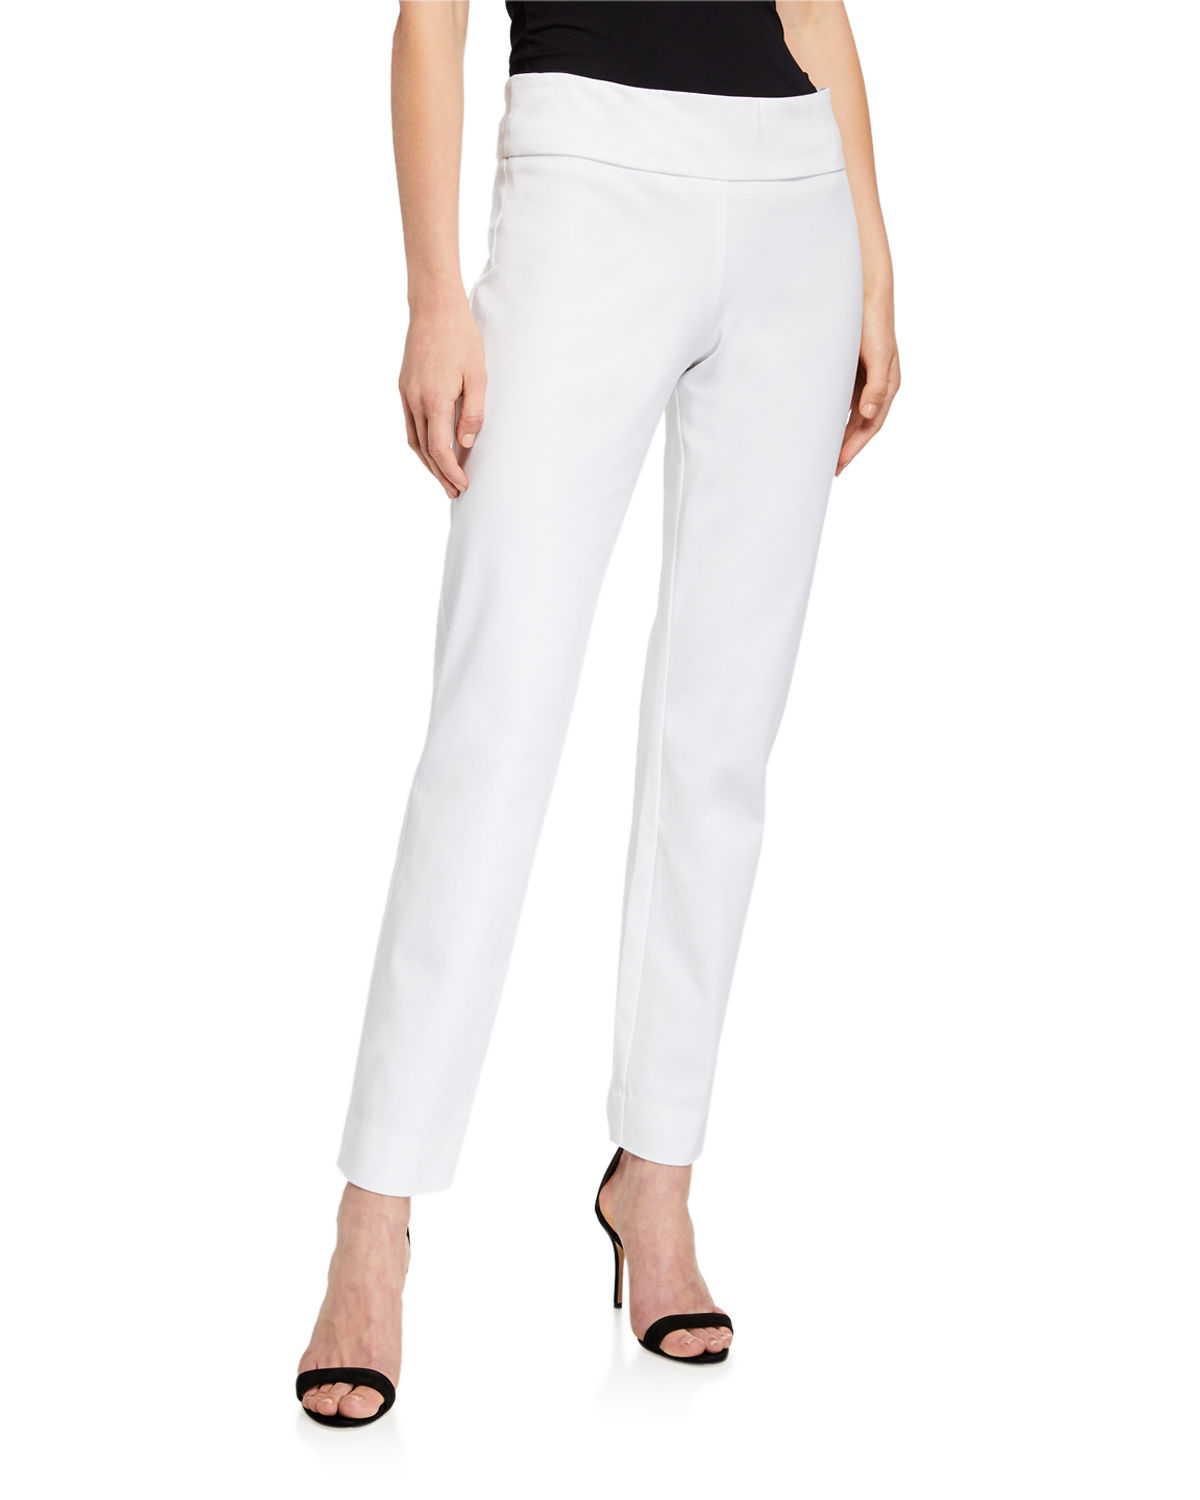 Neiman Marcus Pants PULL-ON STRETCH COTTON ANKLE PANTS